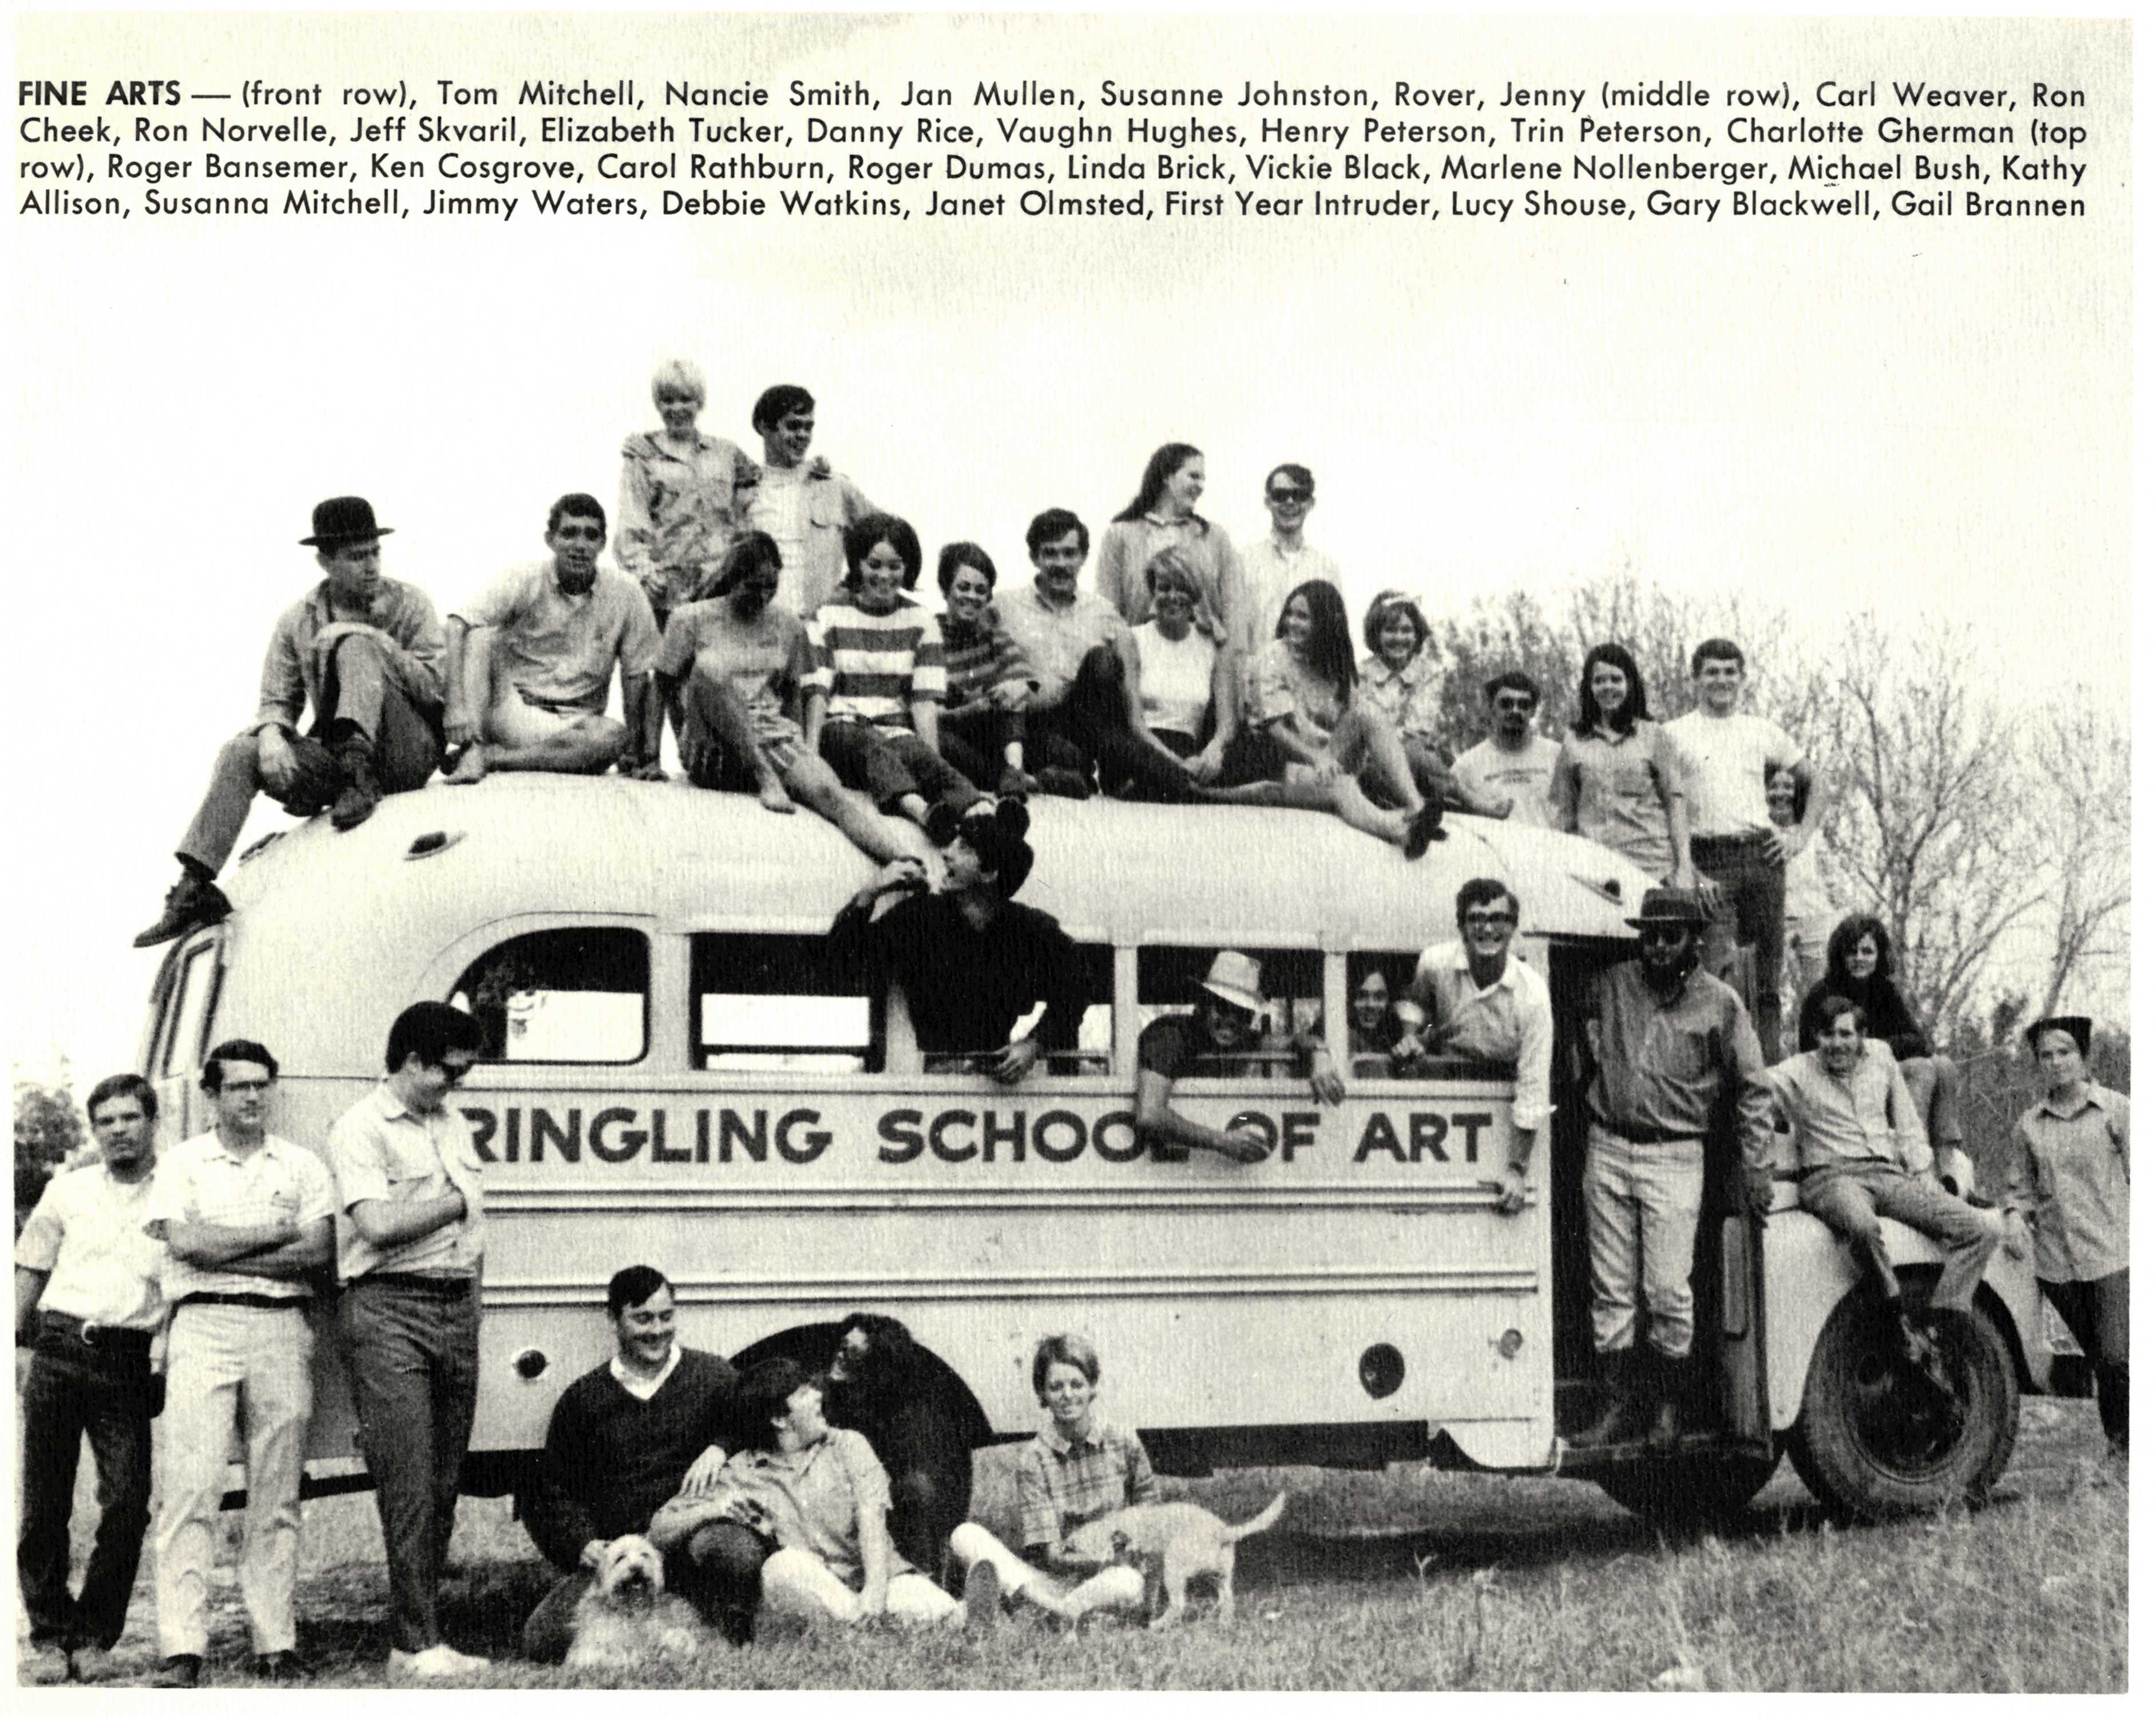 Fine Arts students on and around school bus, 1970